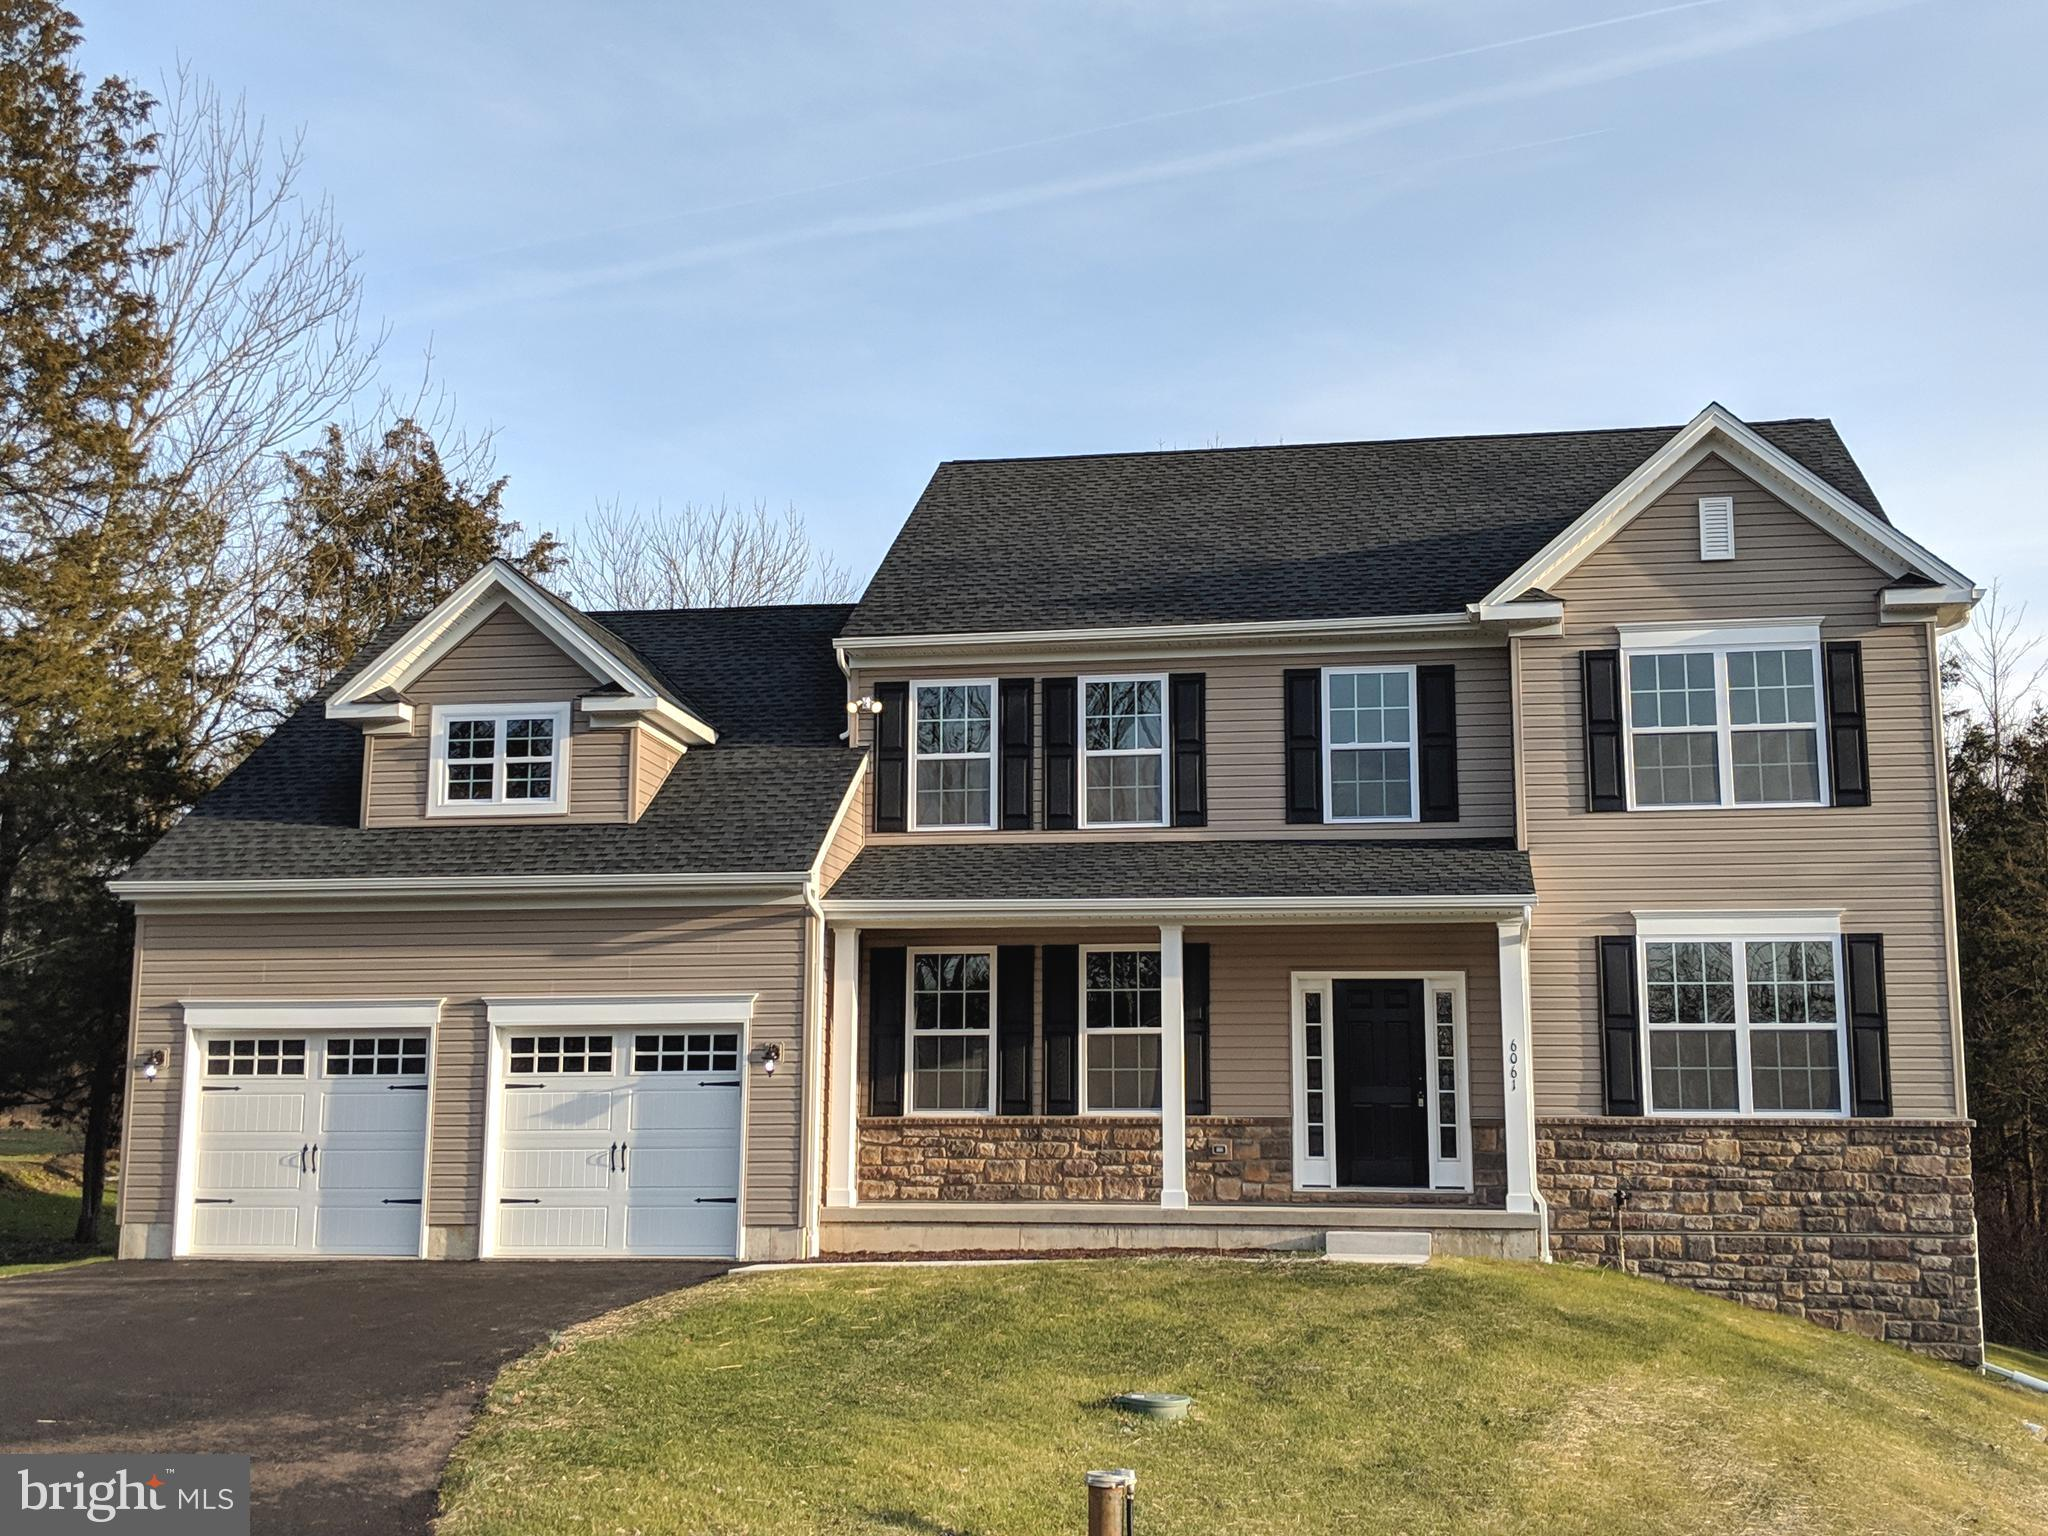 6061 UPPER RIDGE ROAD, GREEN LANE, PA 18054